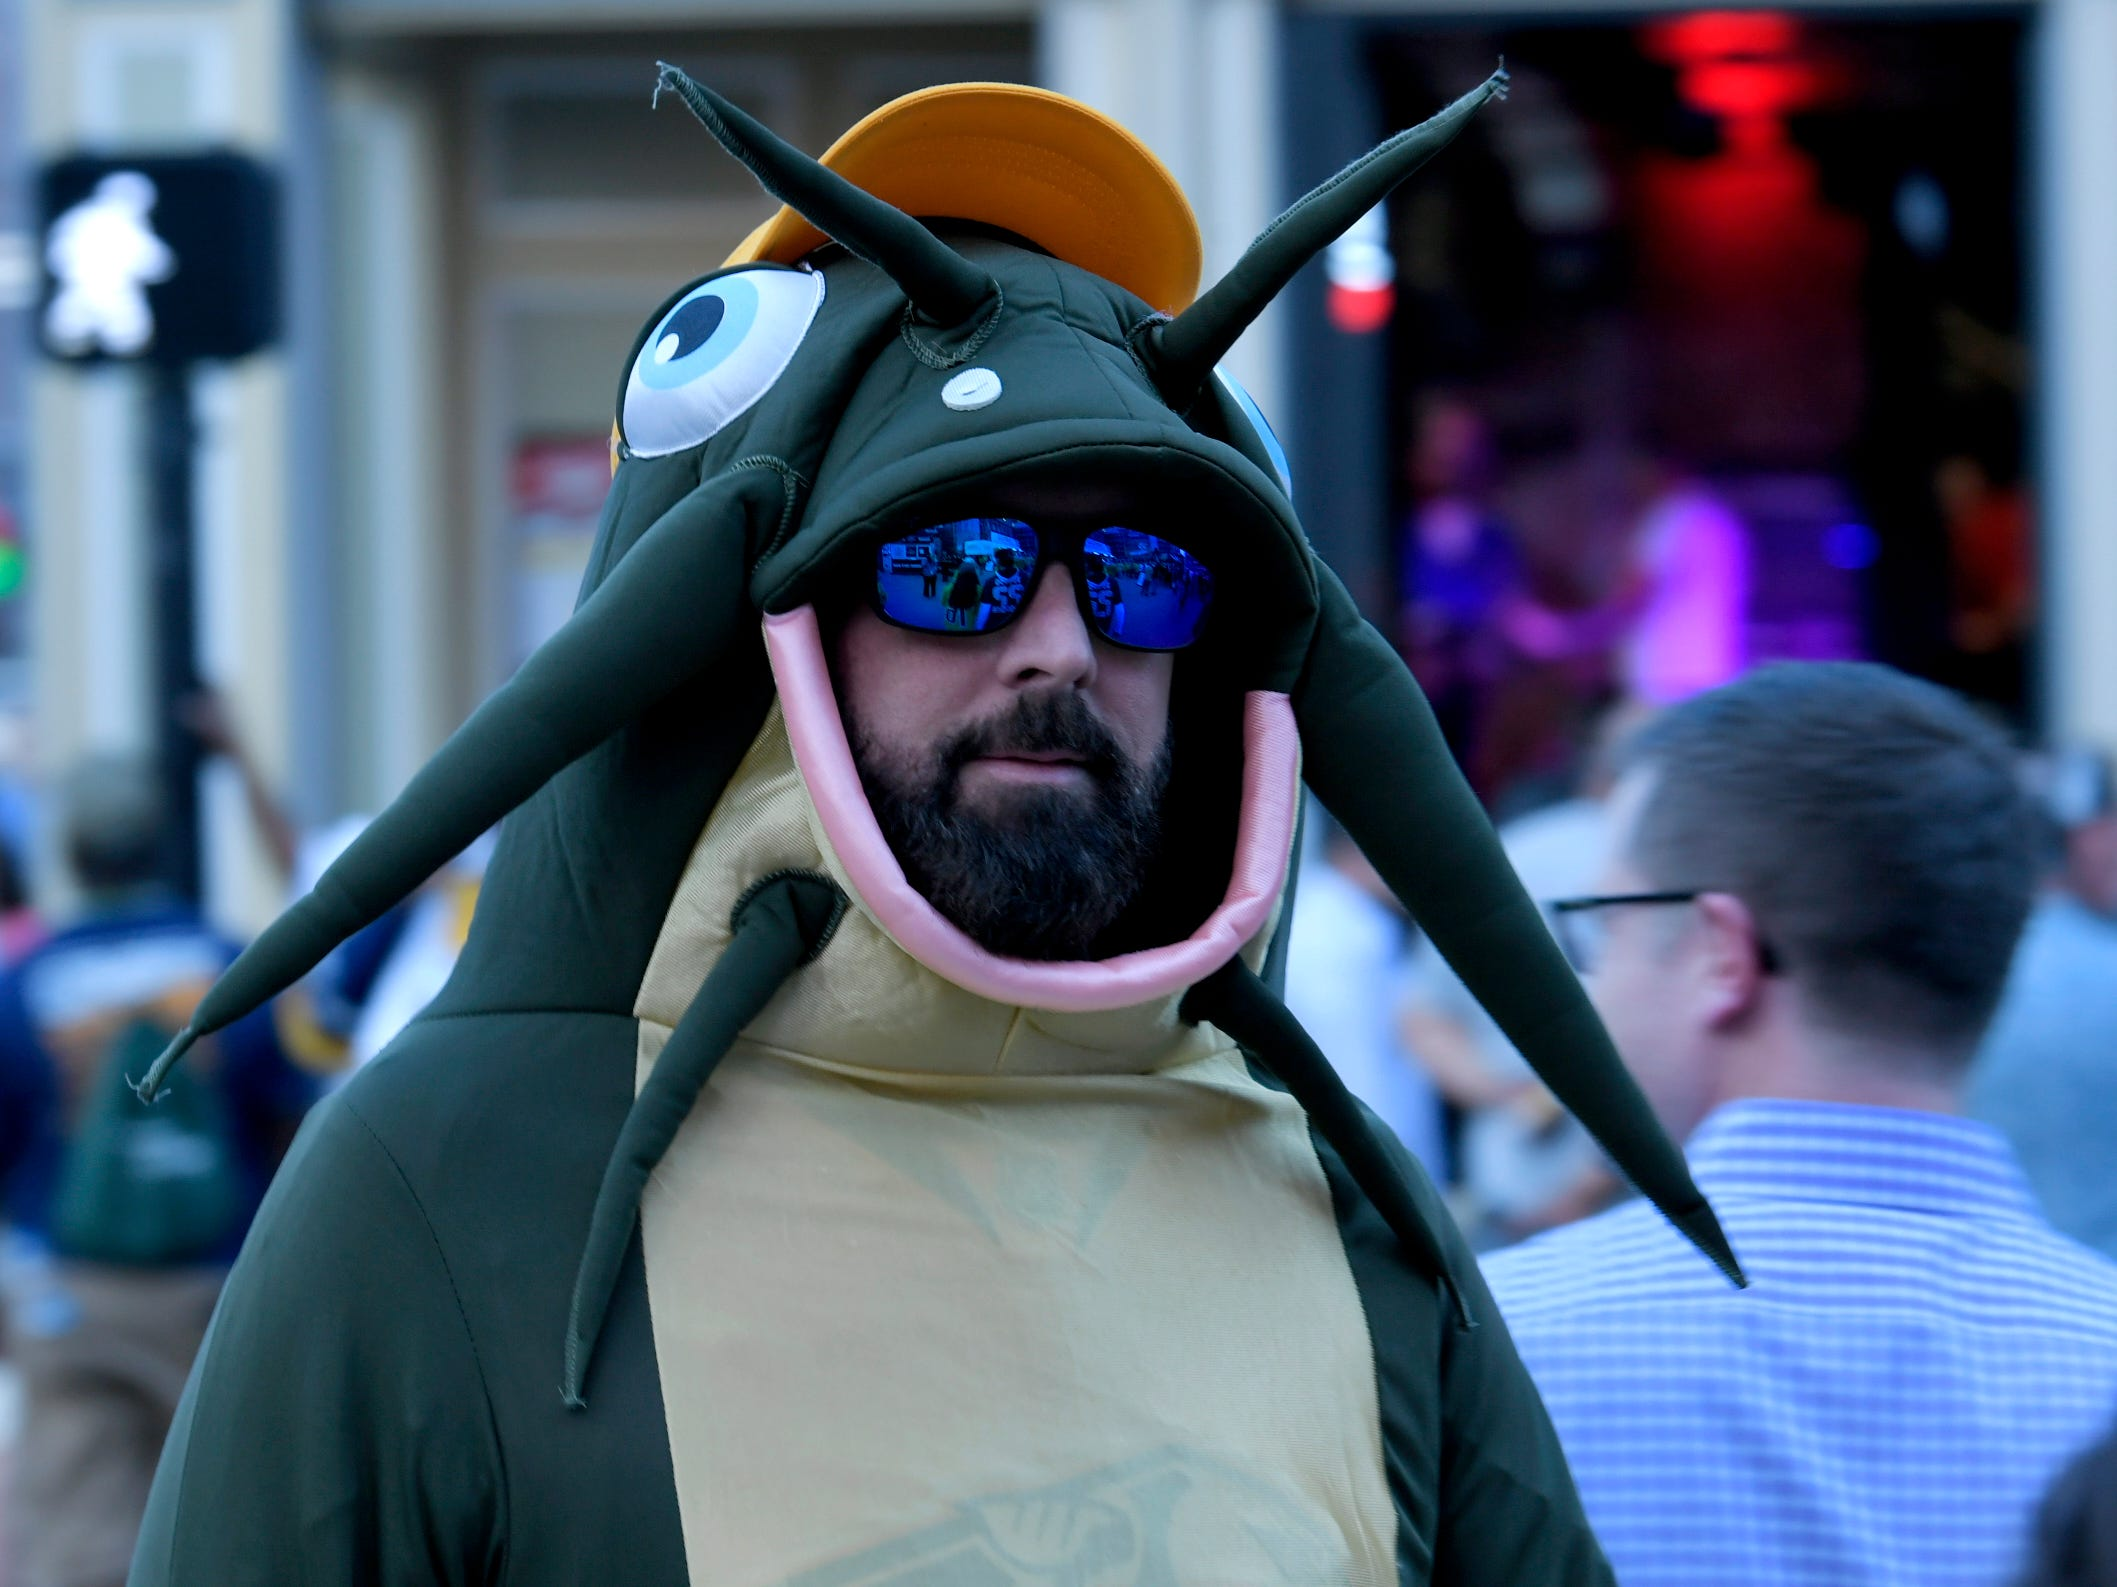 A Predators fan decked out in full catfish costume walks around before the divisional semifinal game at Bridgestone Arena in Nashville, Tenn., Wednesday, April 10, 2019.